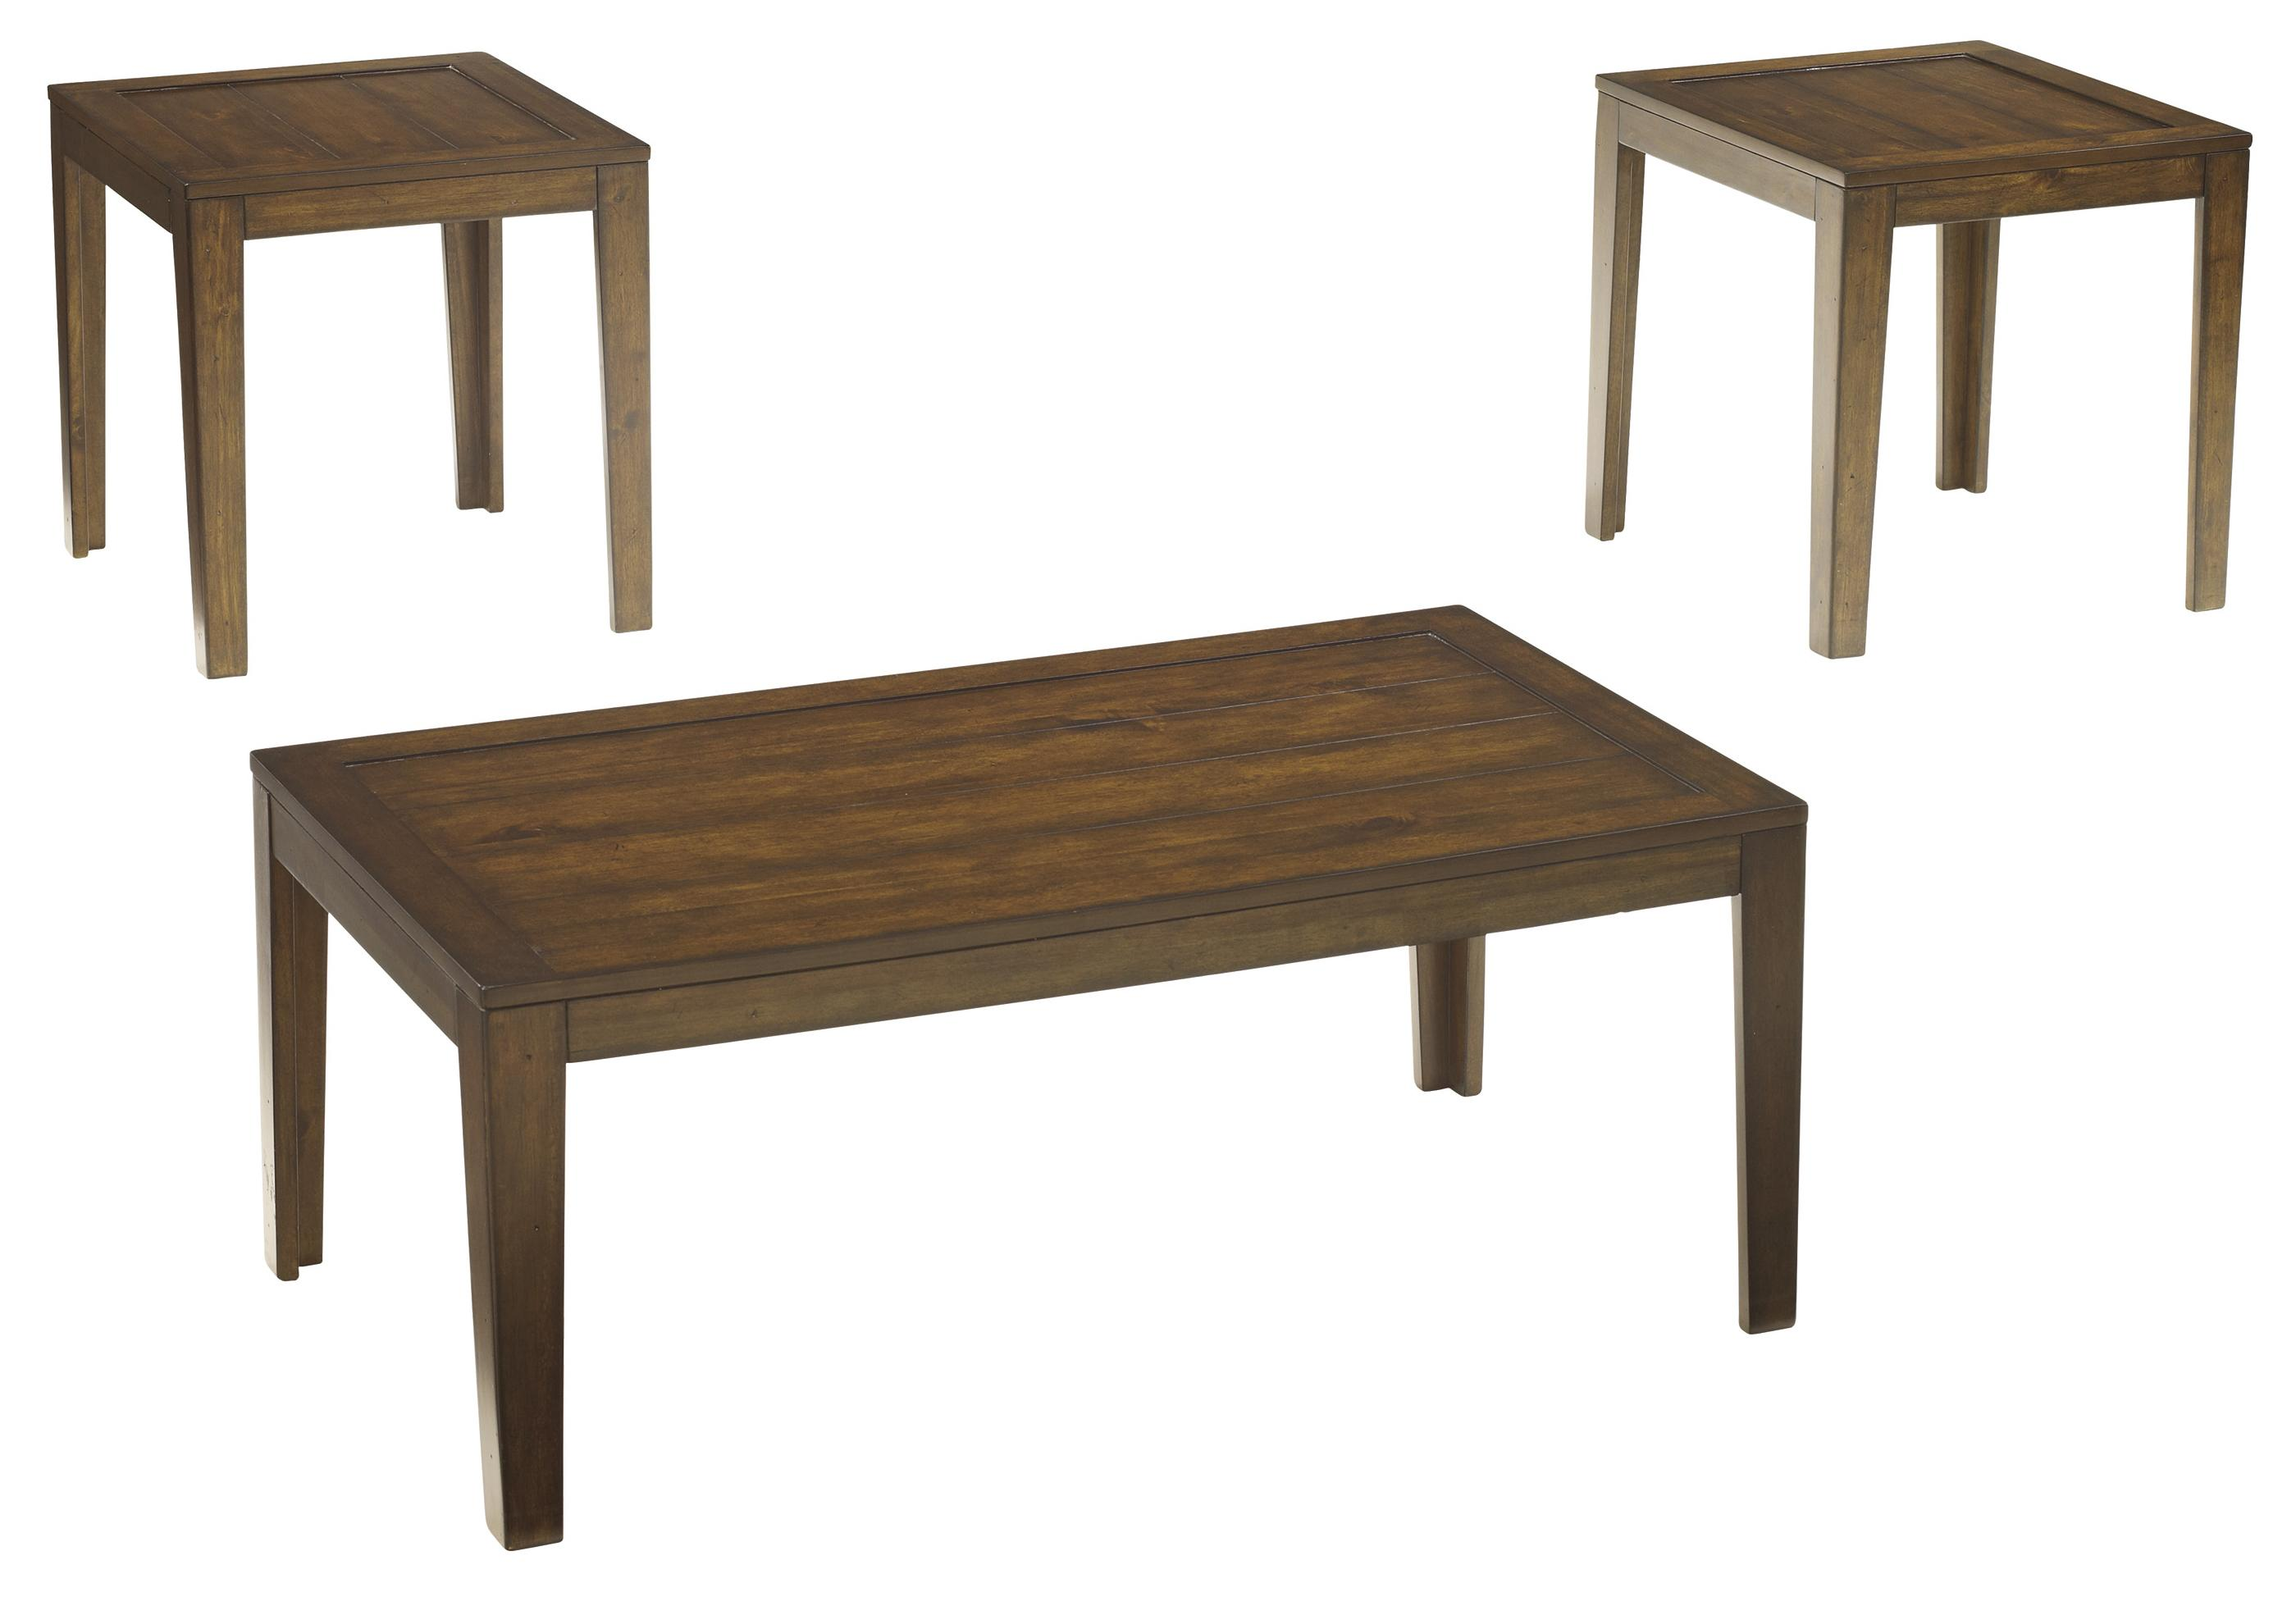 Signature Design by Ashley Hollytyne 3-Piece Occasional Table Set - Item Number: T228-13